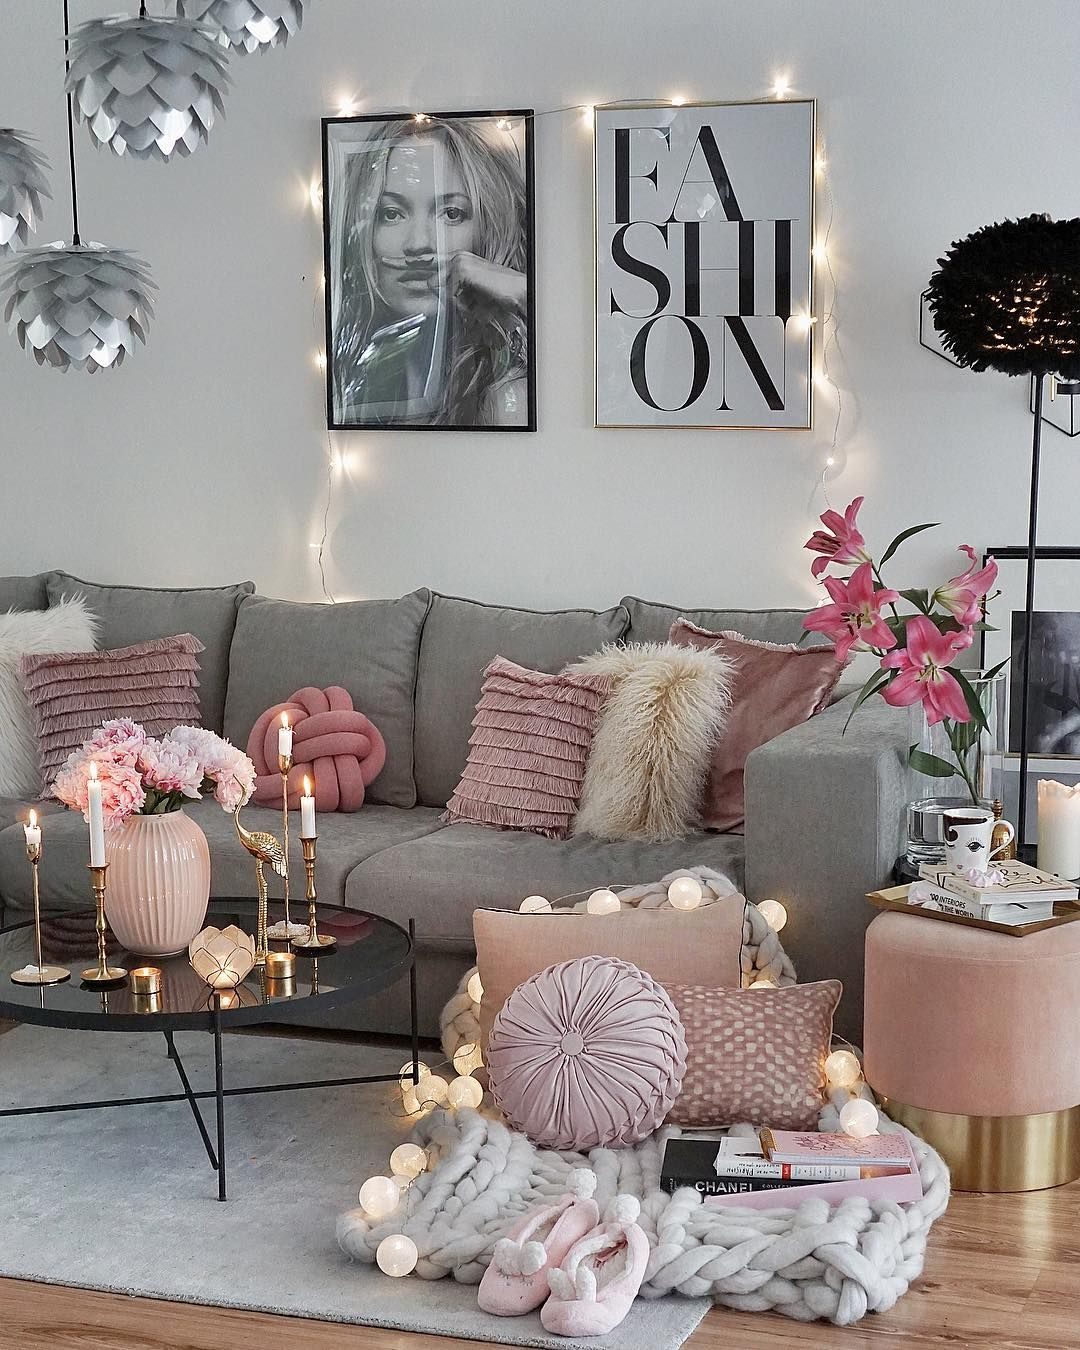 all the hygge feels in this living room beautiful pink